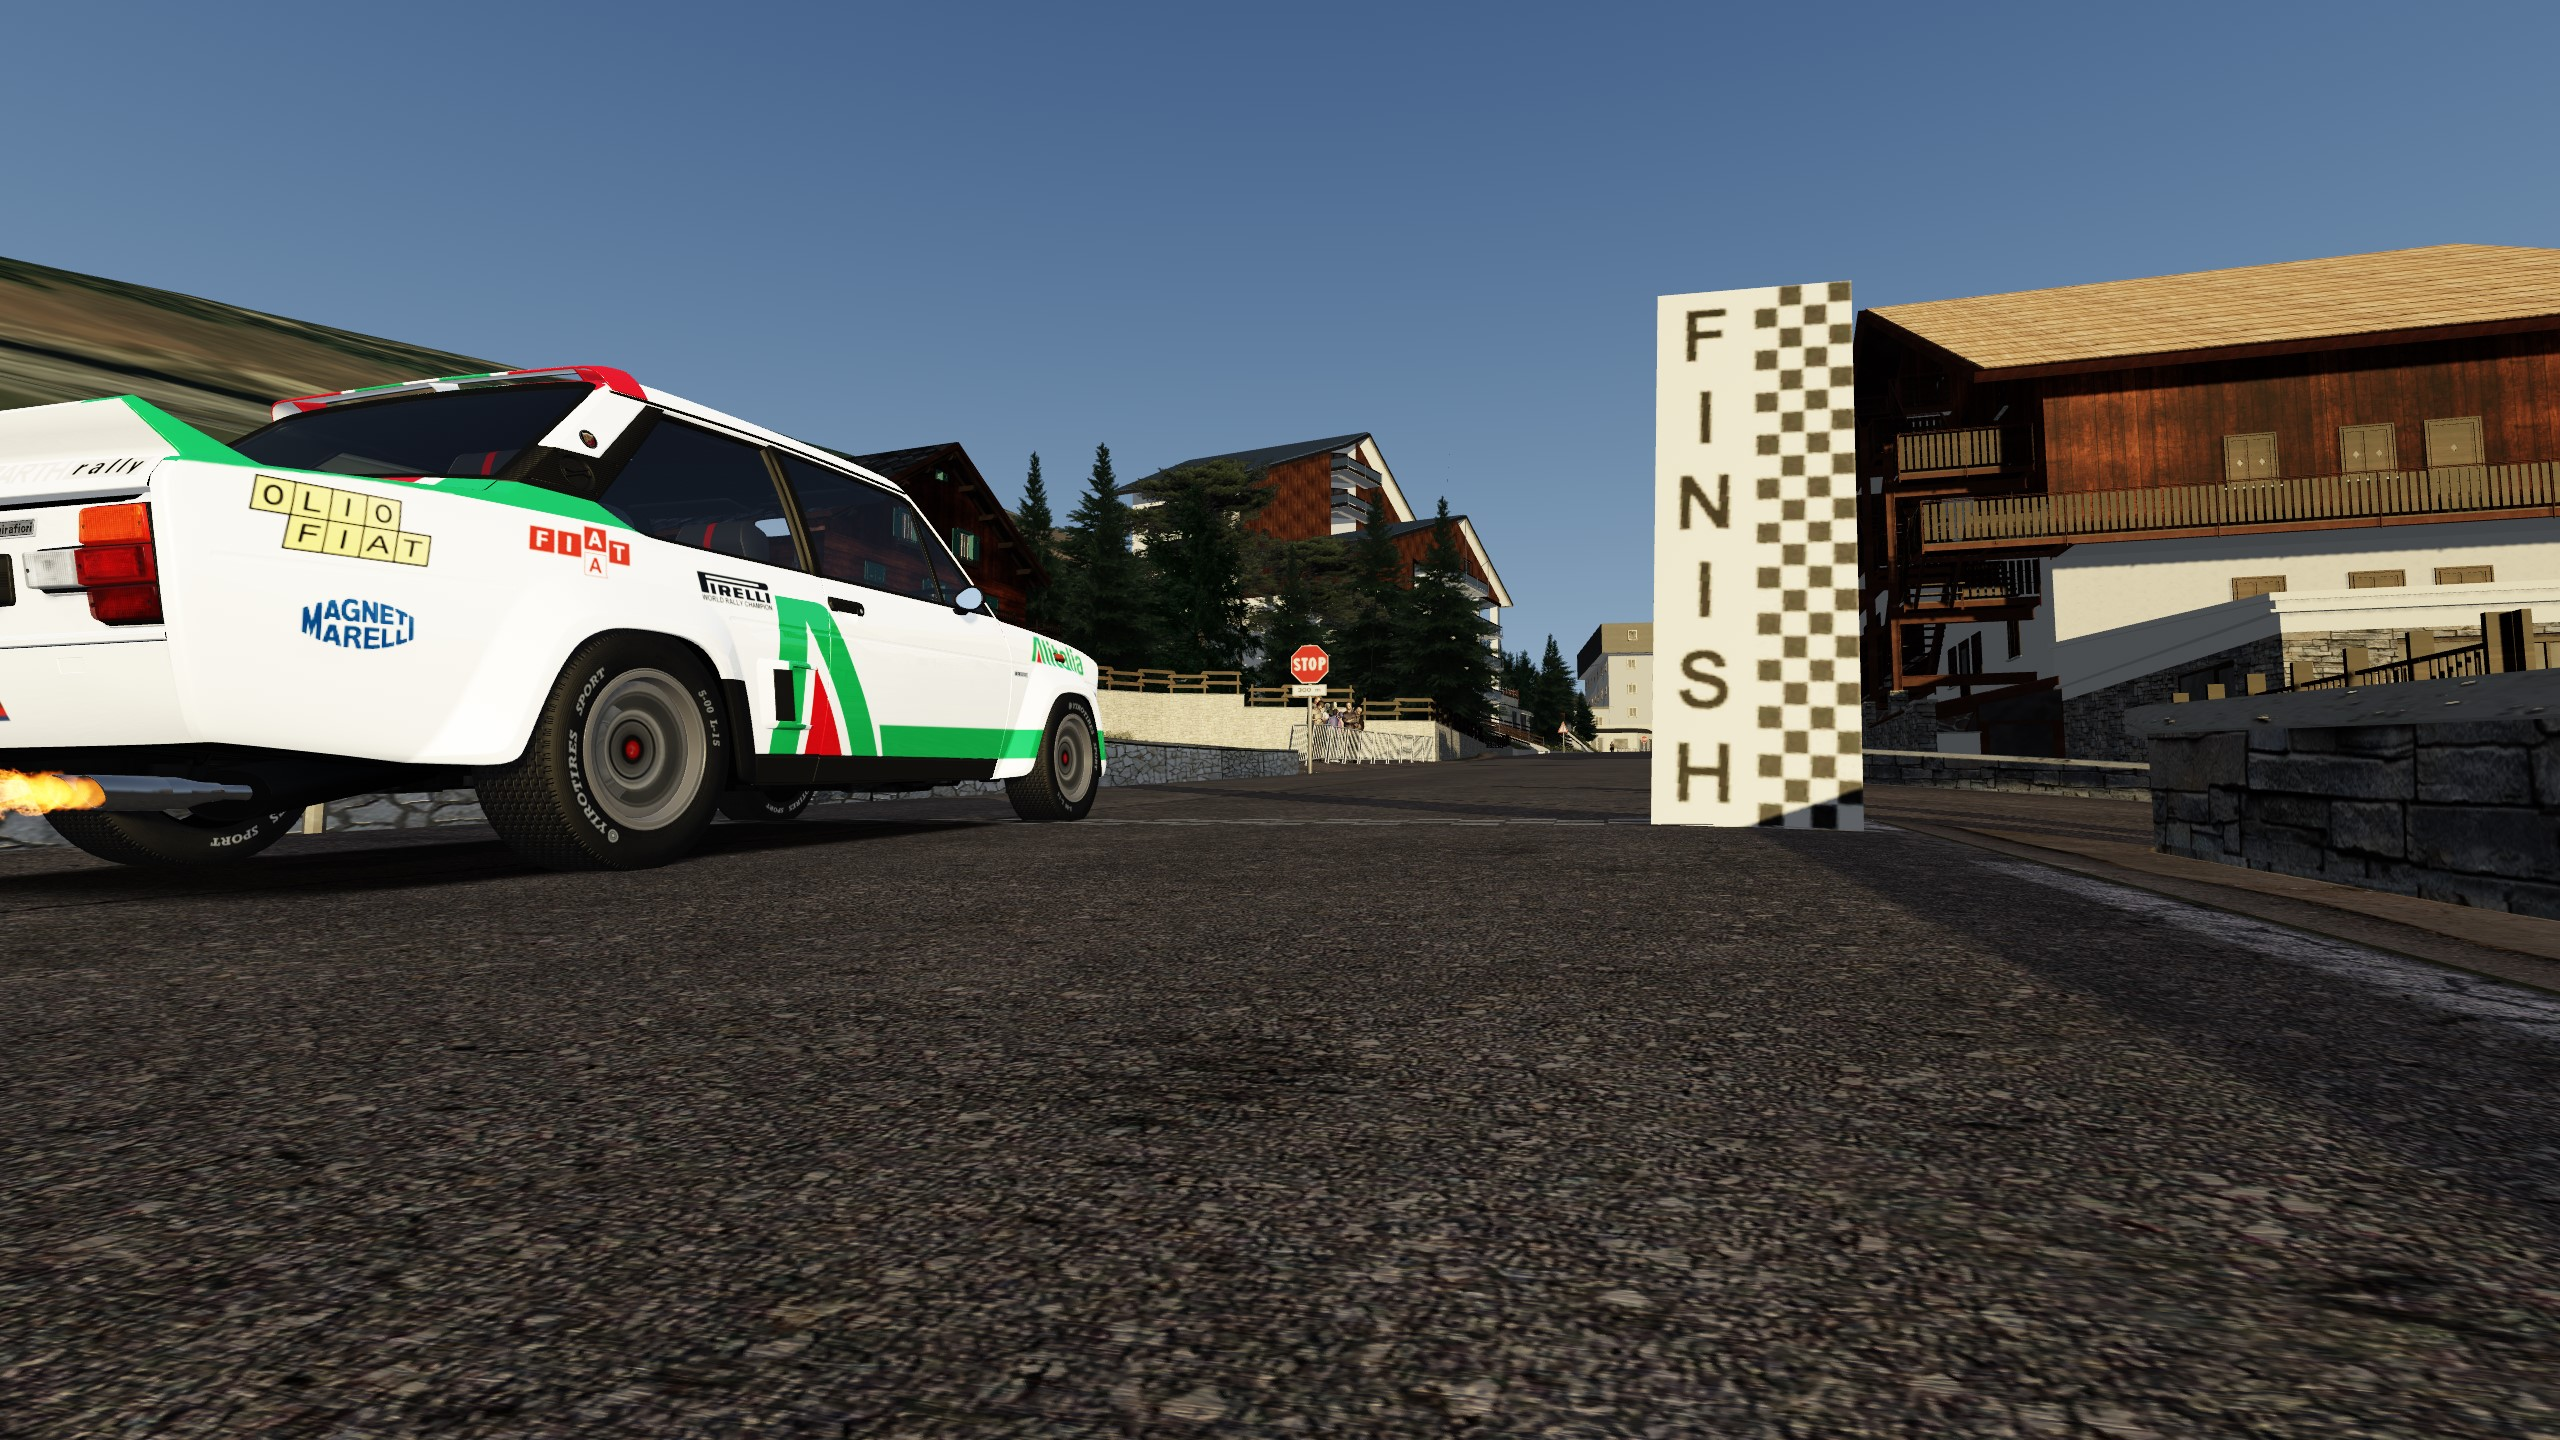 Screenshot_fiat_131_abarth_cesanasestriere_3-11-118-17-42-43.jpg